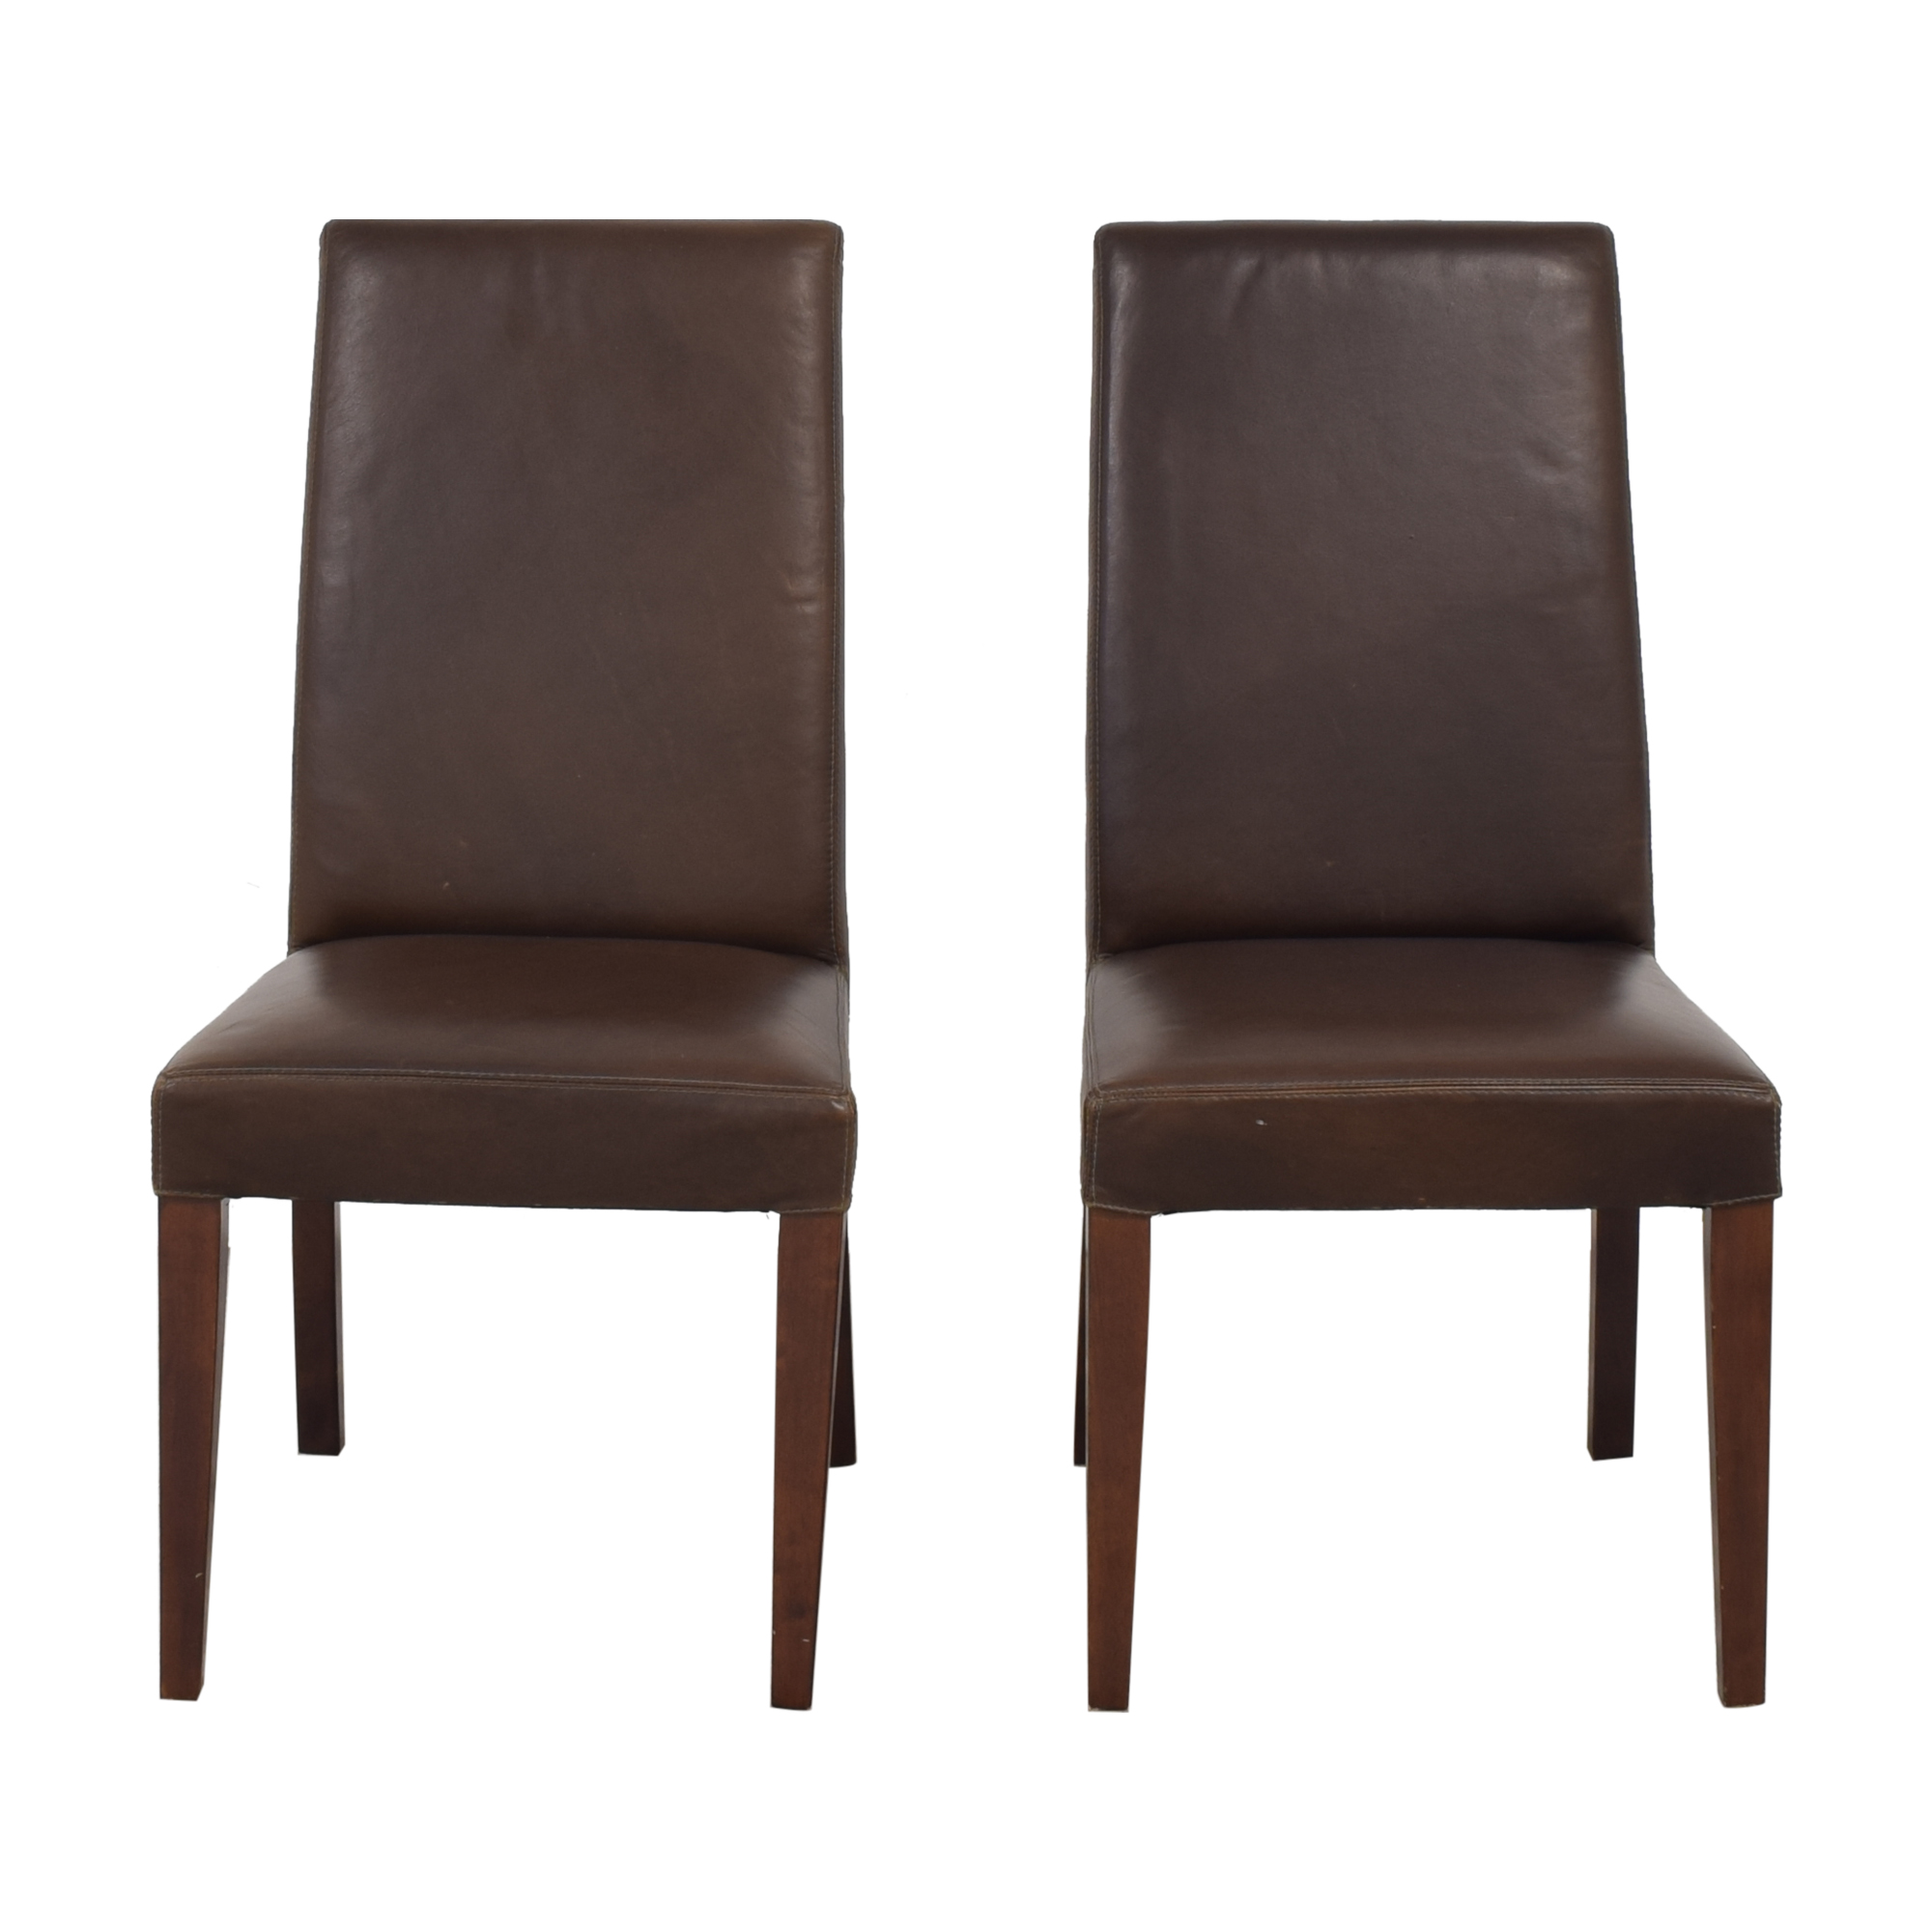 Pottery Barn Grayson Dining Chairs / Chairs